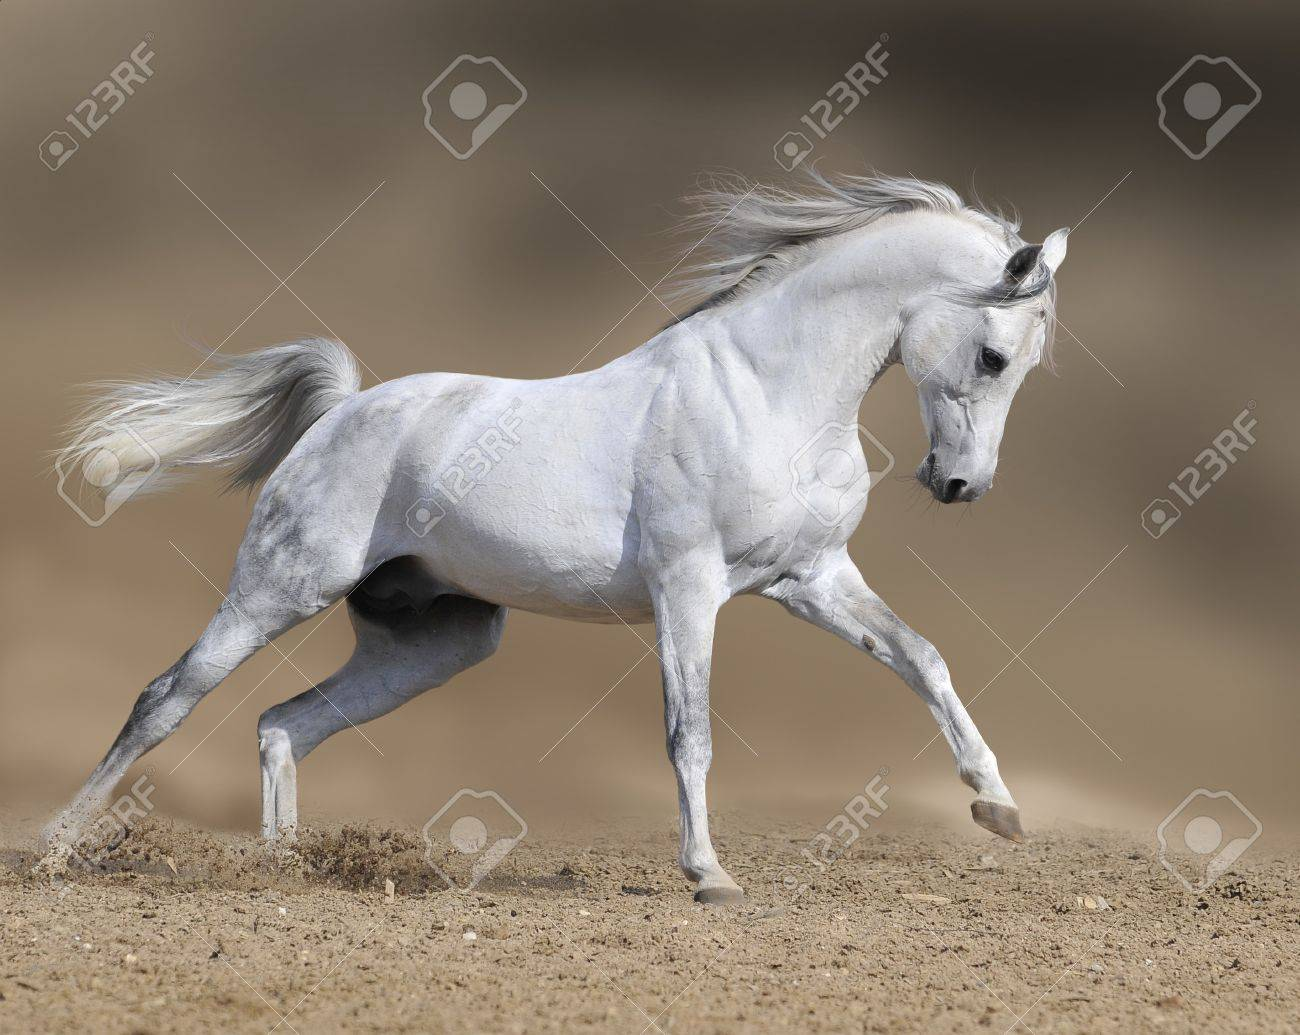 White Horse Run Gallop Stock Photo Picture And Royalty Free Image